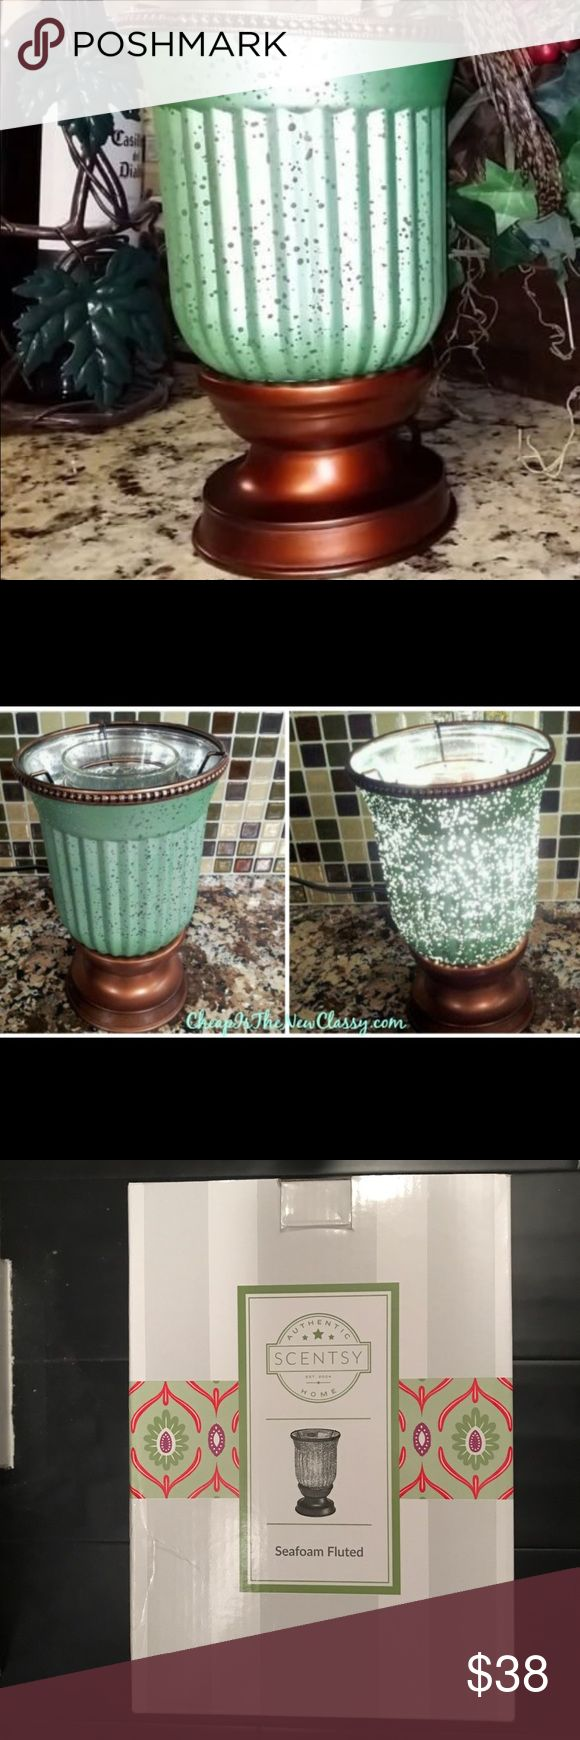 Scentsy seafoam fluted candle wax warmer This is a magical warmer grounded and topped in bronze, with a fantastical deep sea explosion of bubbles capturing your attention. scentsy Accessories